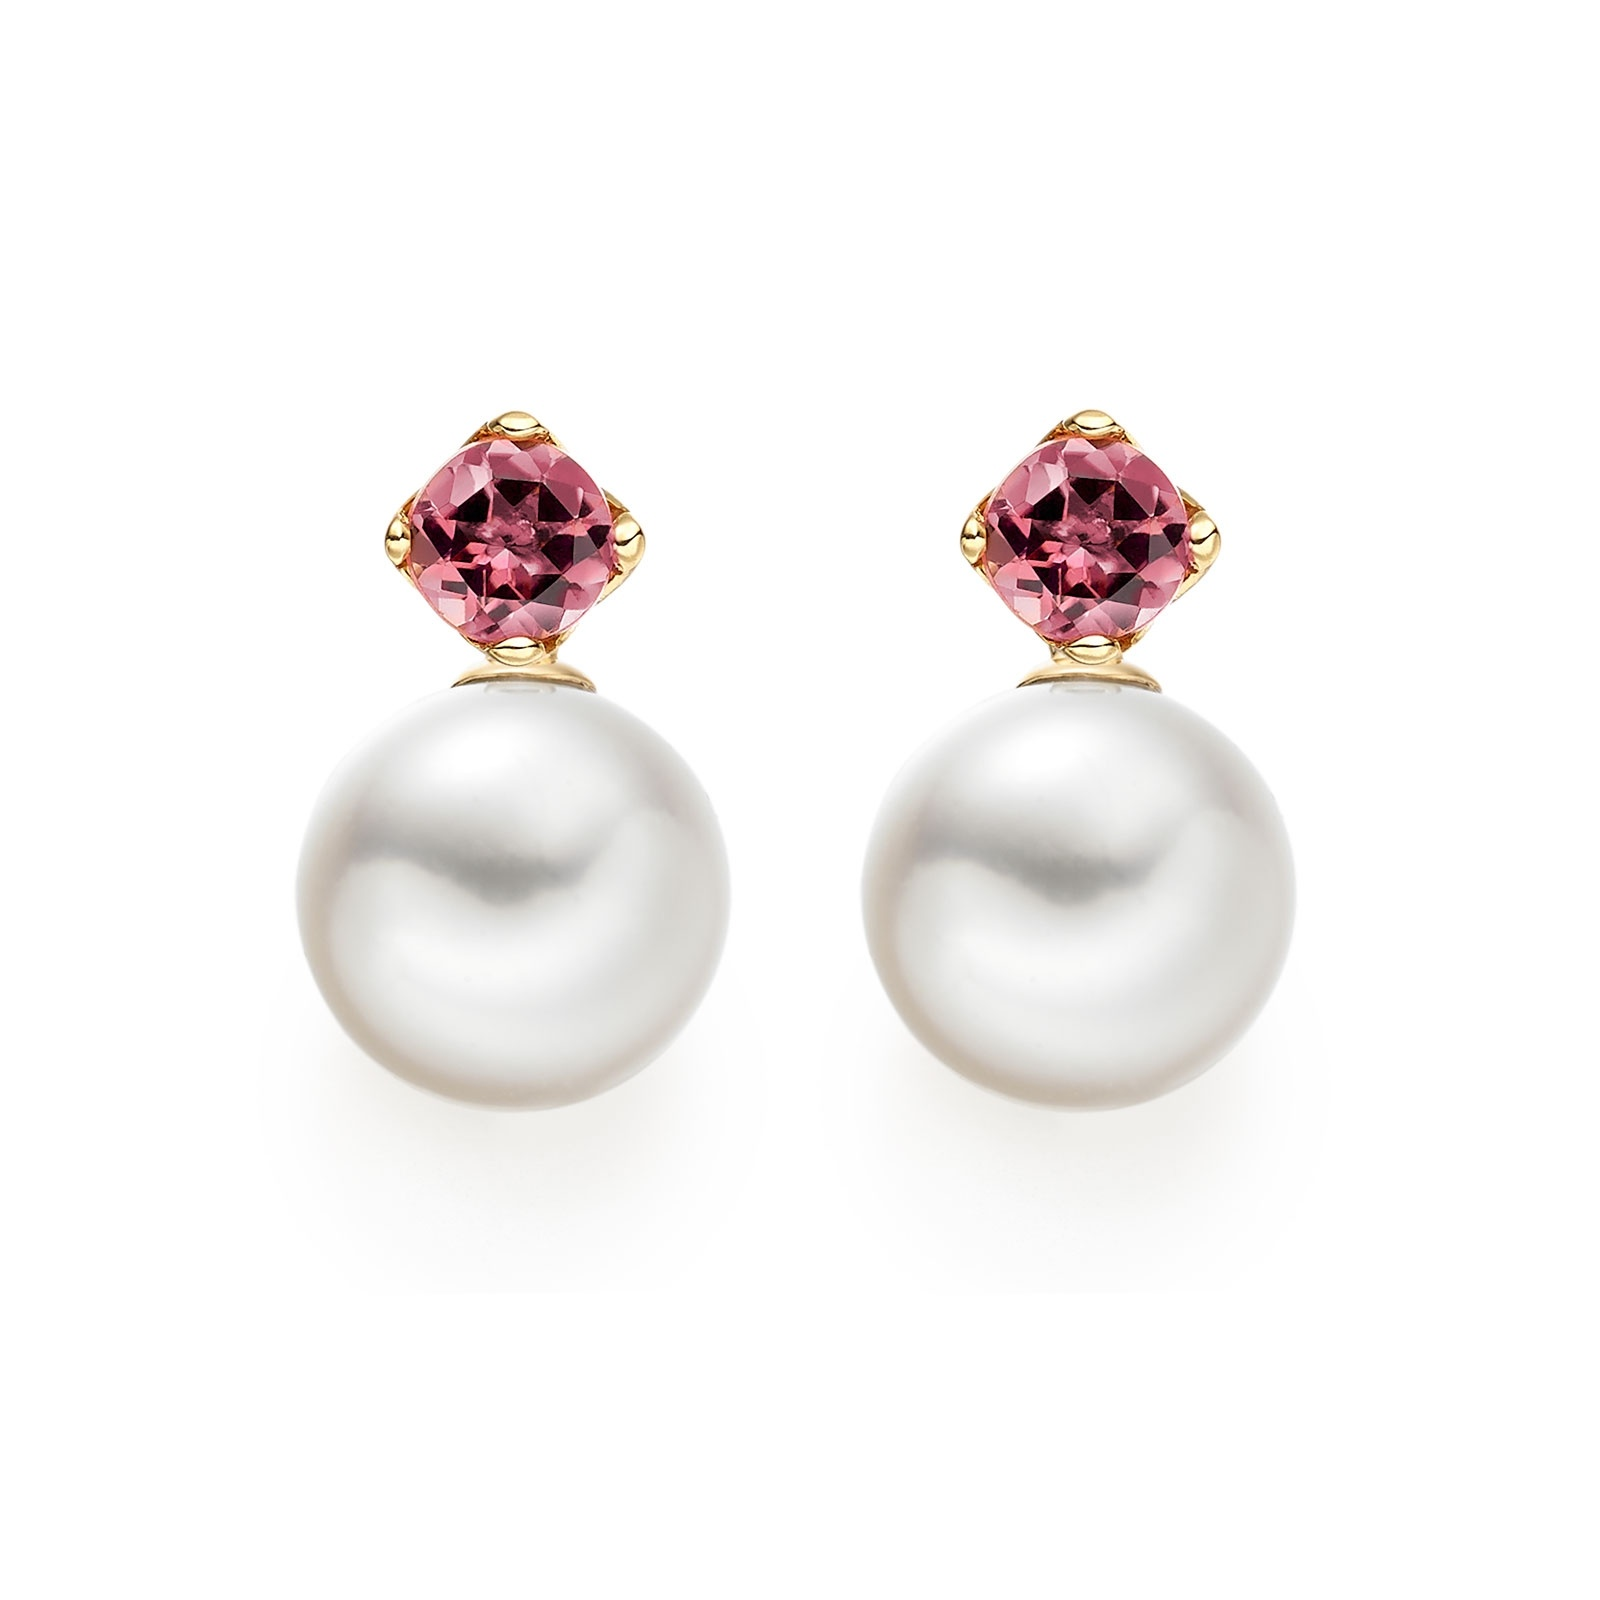 Lief Pink Tourmaline Earrings in Yellow Gold with Akoya Pearls-AEWRPT0466-1